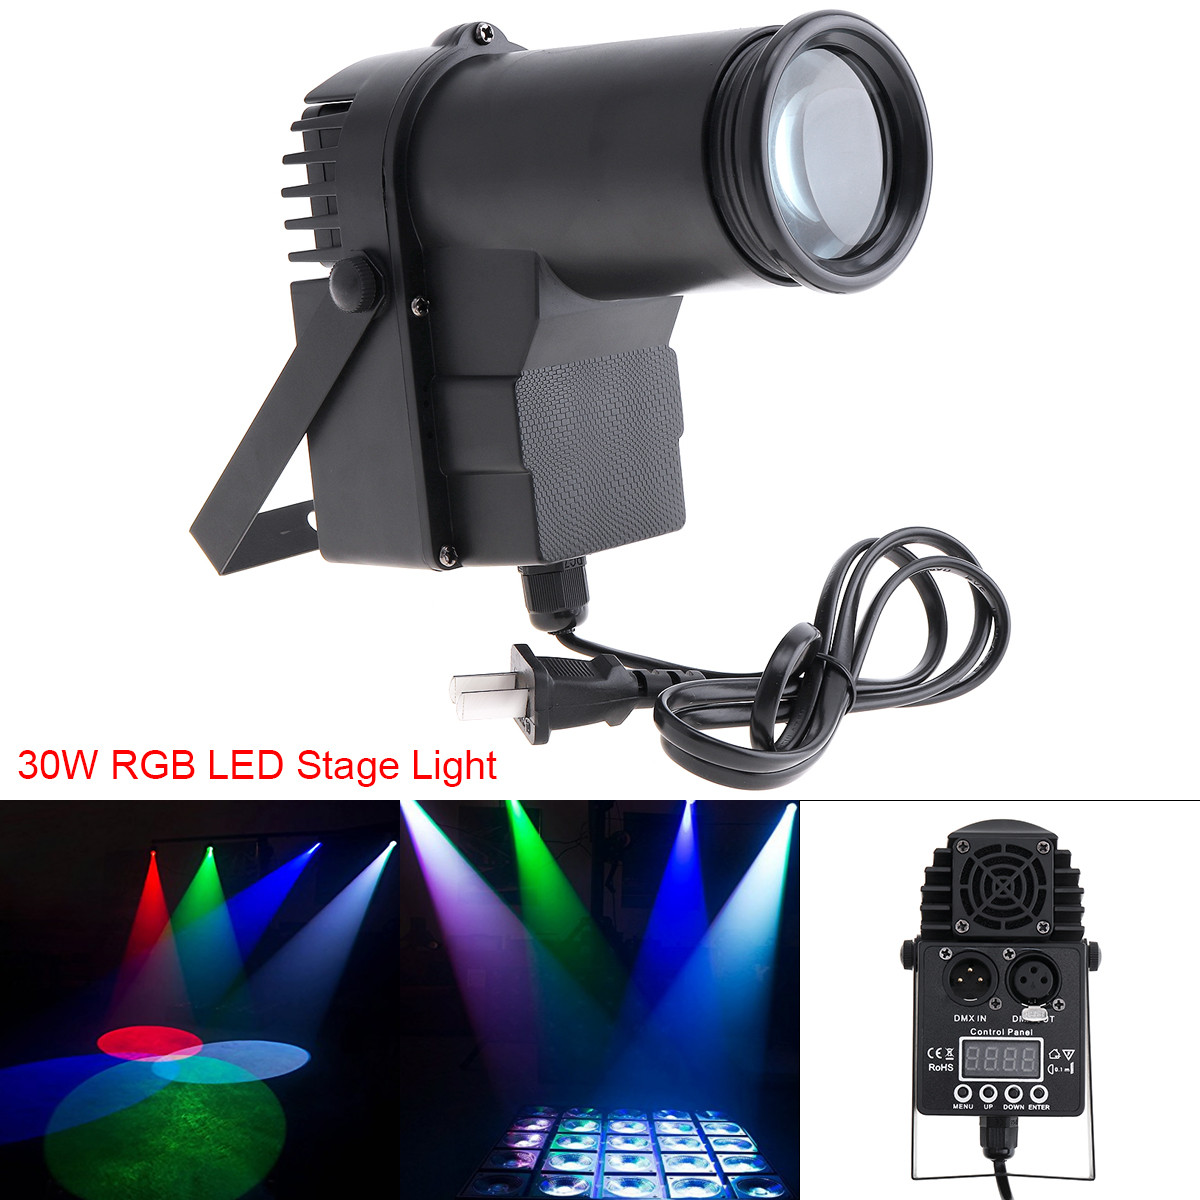 30W RGBW DMX LED Stage Light Pinspot Beam Spotlight Professional DJ Bar KTV Party Atmosphere Stage Lighting With Voice Control